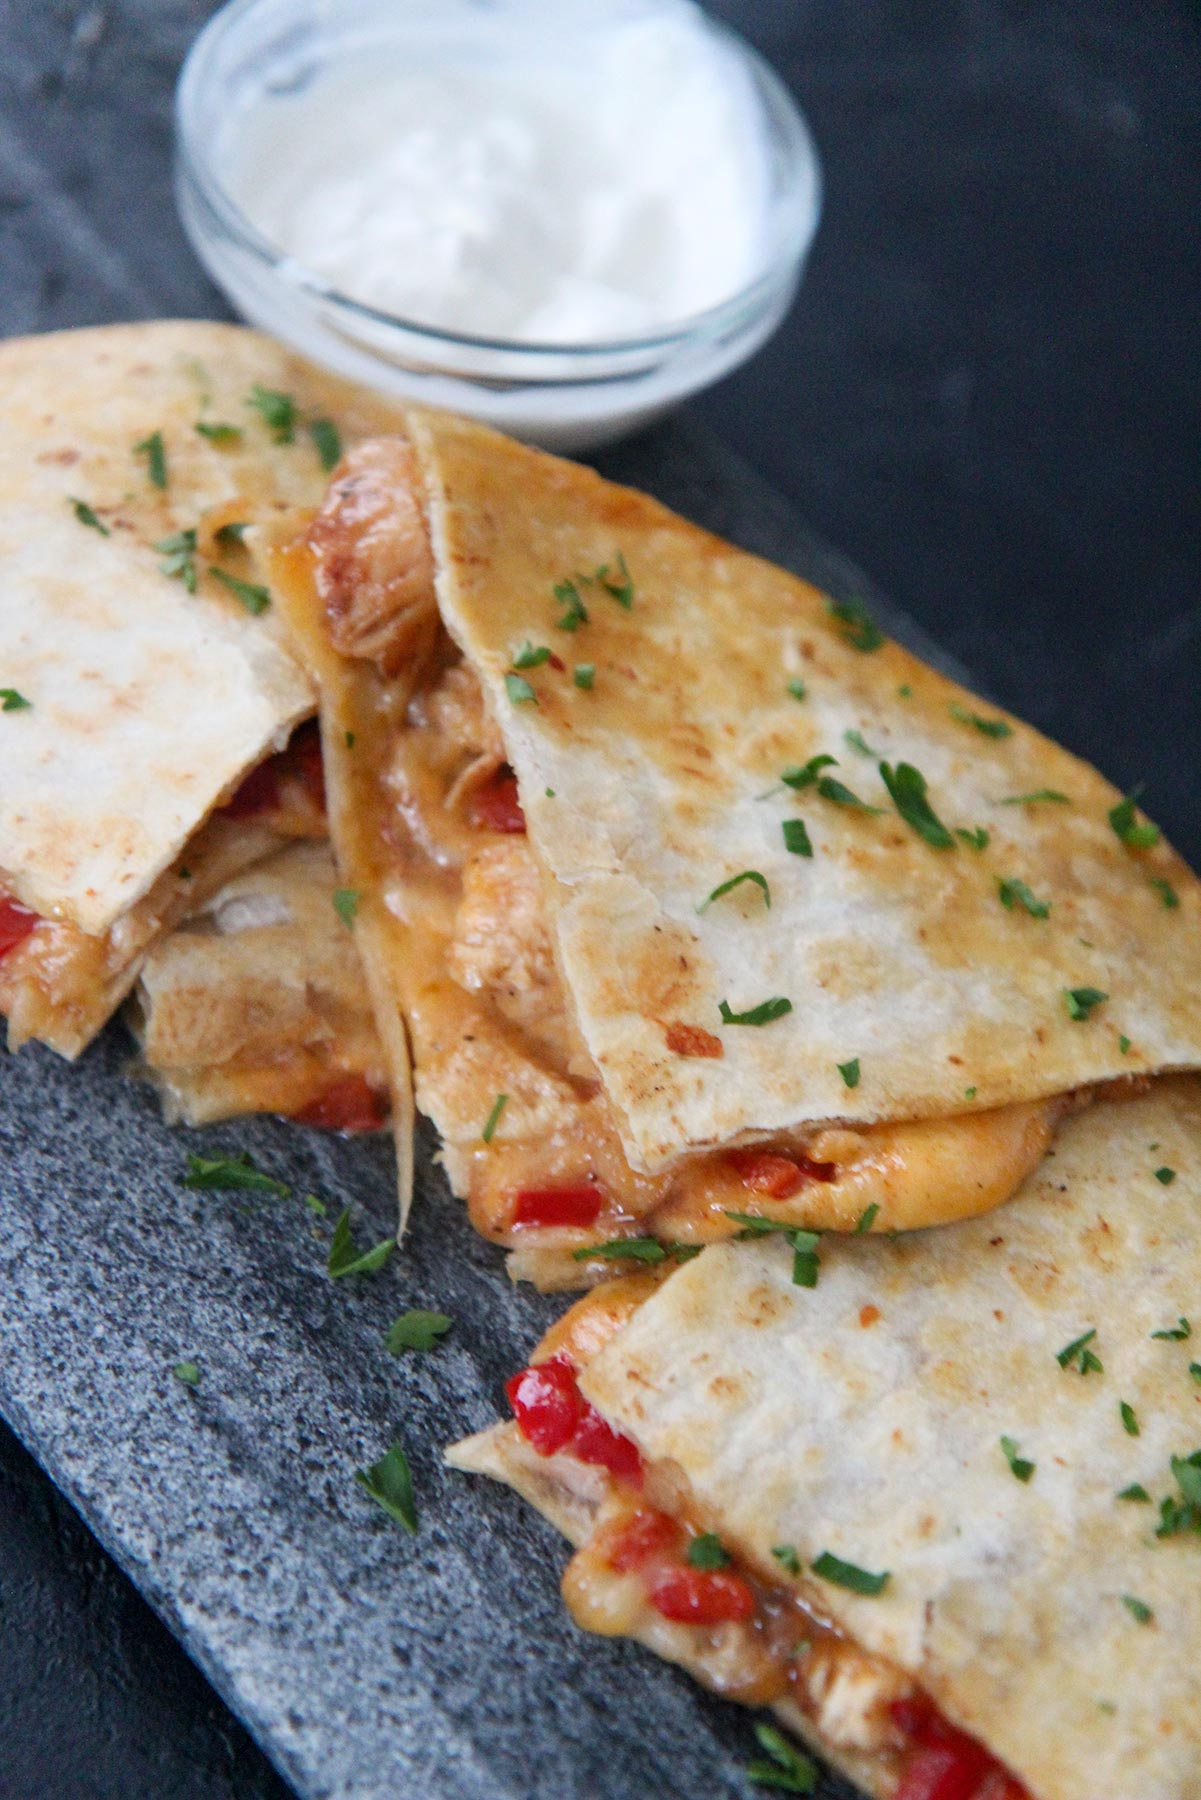 cheese and chicken quesadillas with sour cream on the side